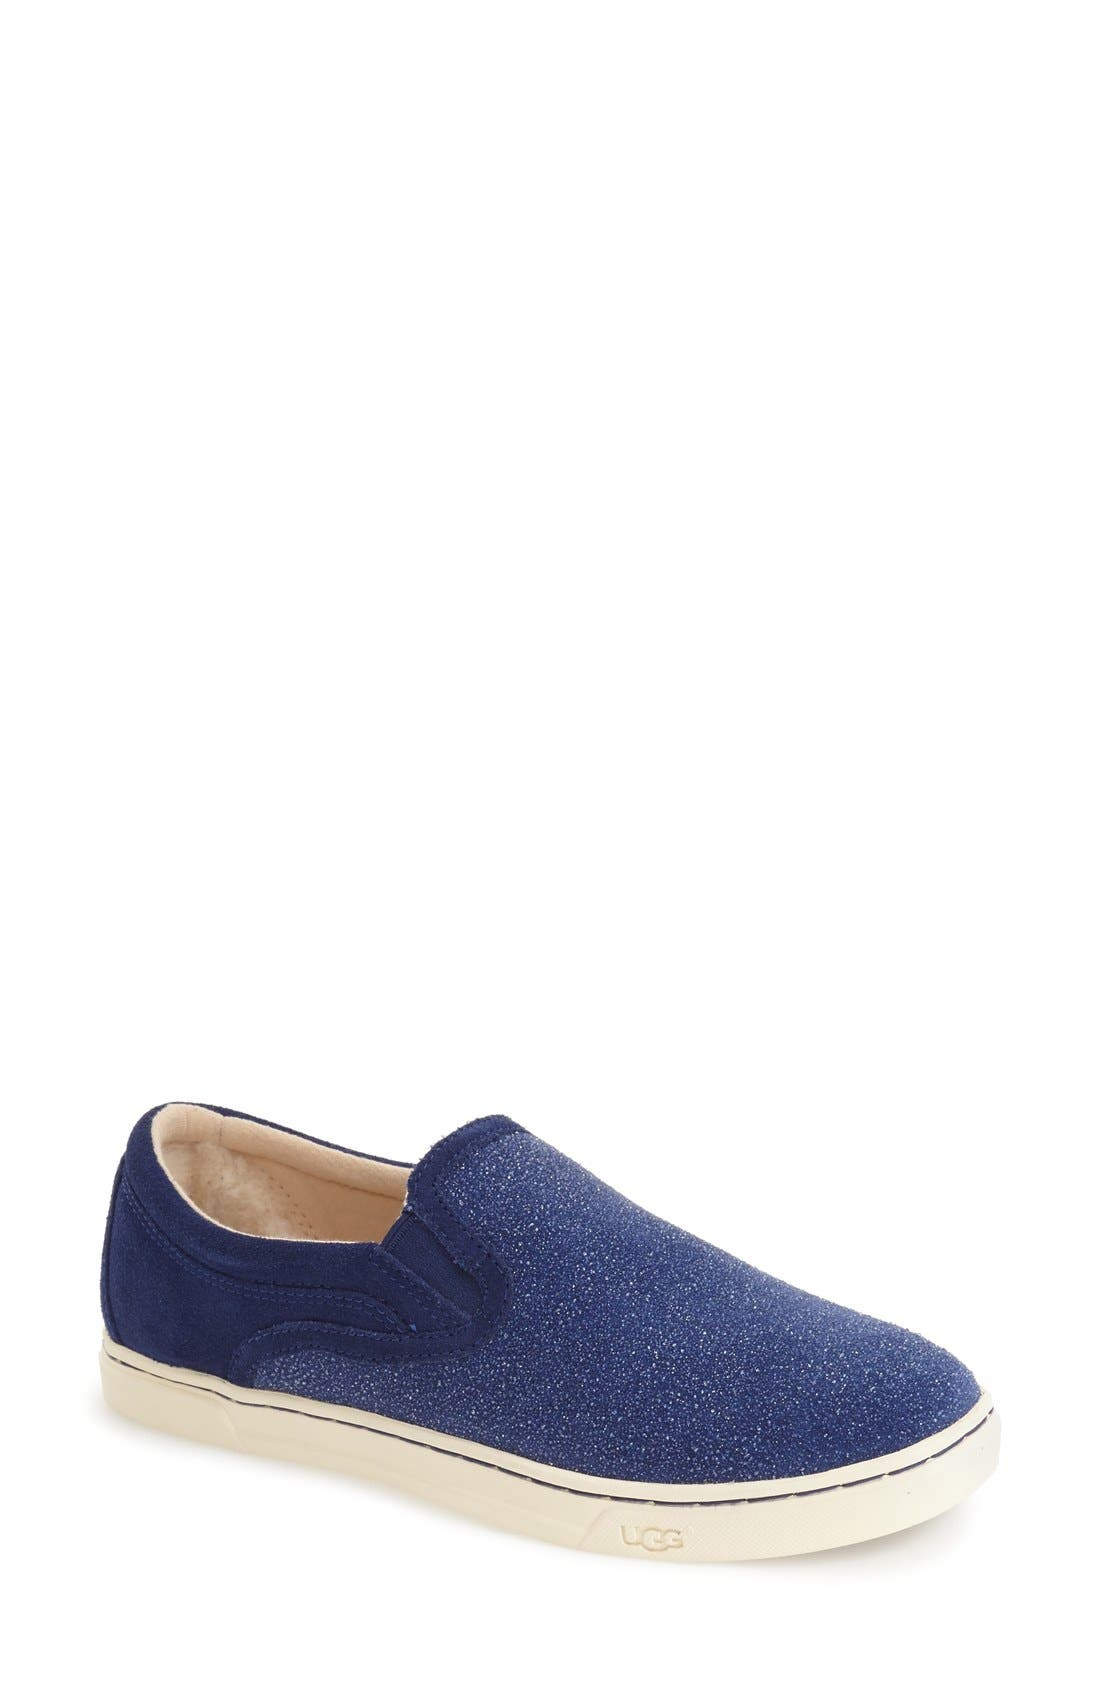 UGG<SUP>®</SUP> Fierce Slip-On Sneaker